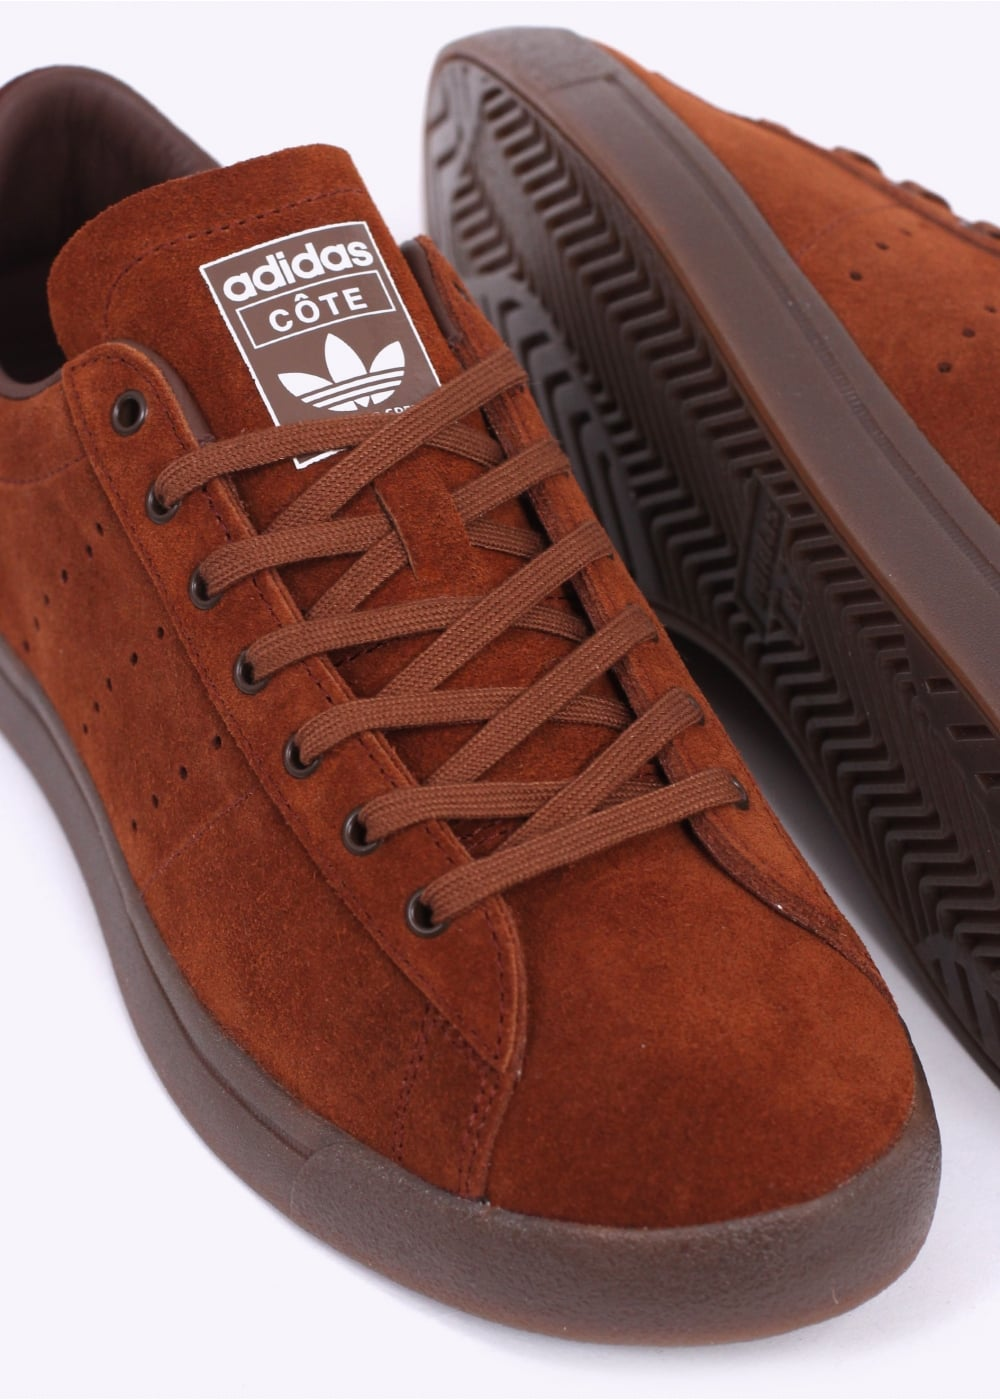 low priced 11d84 4501a SPZL Cote Trainers - Brown   Simple Brown